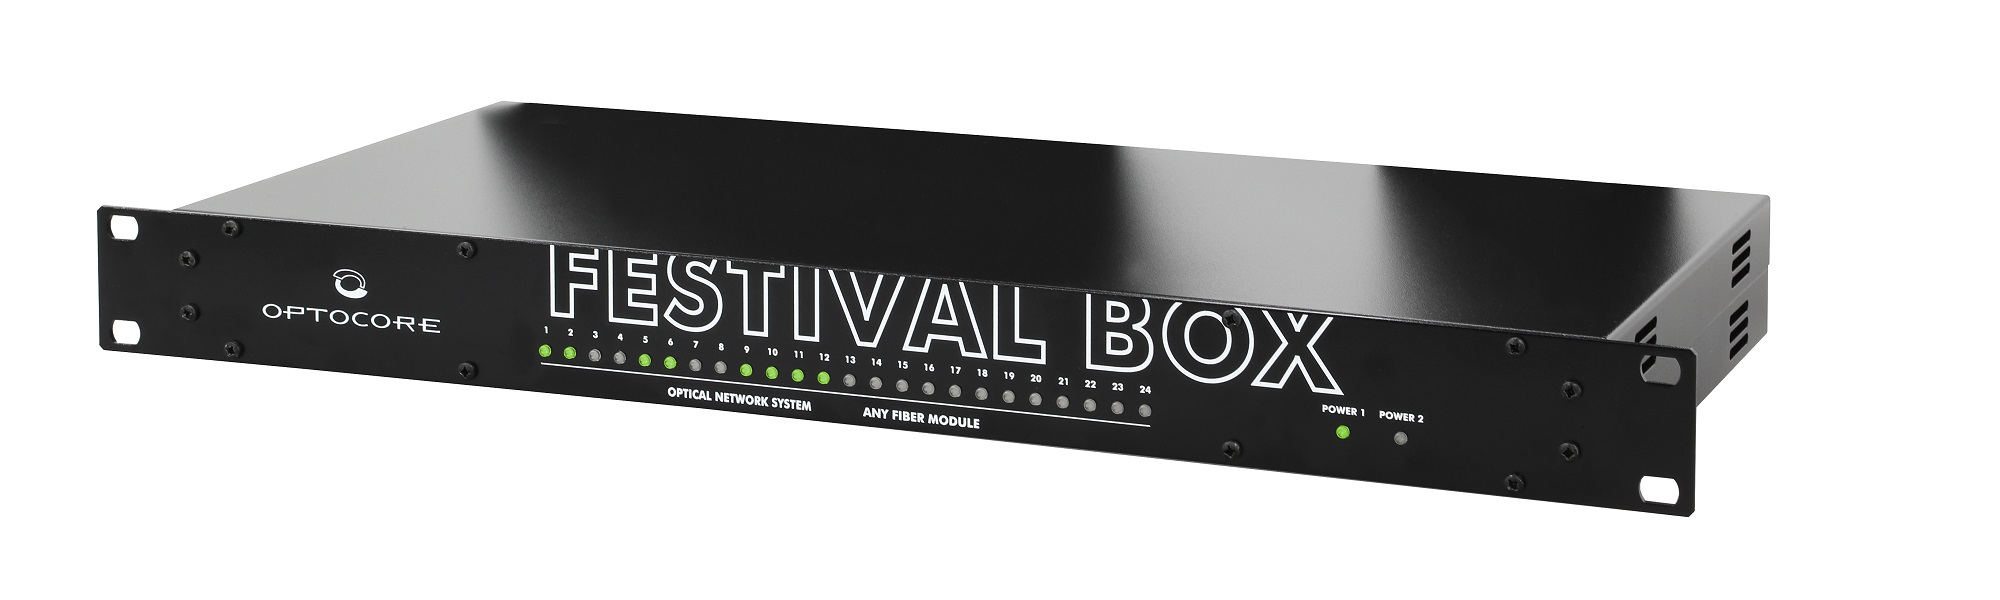 Festival box products